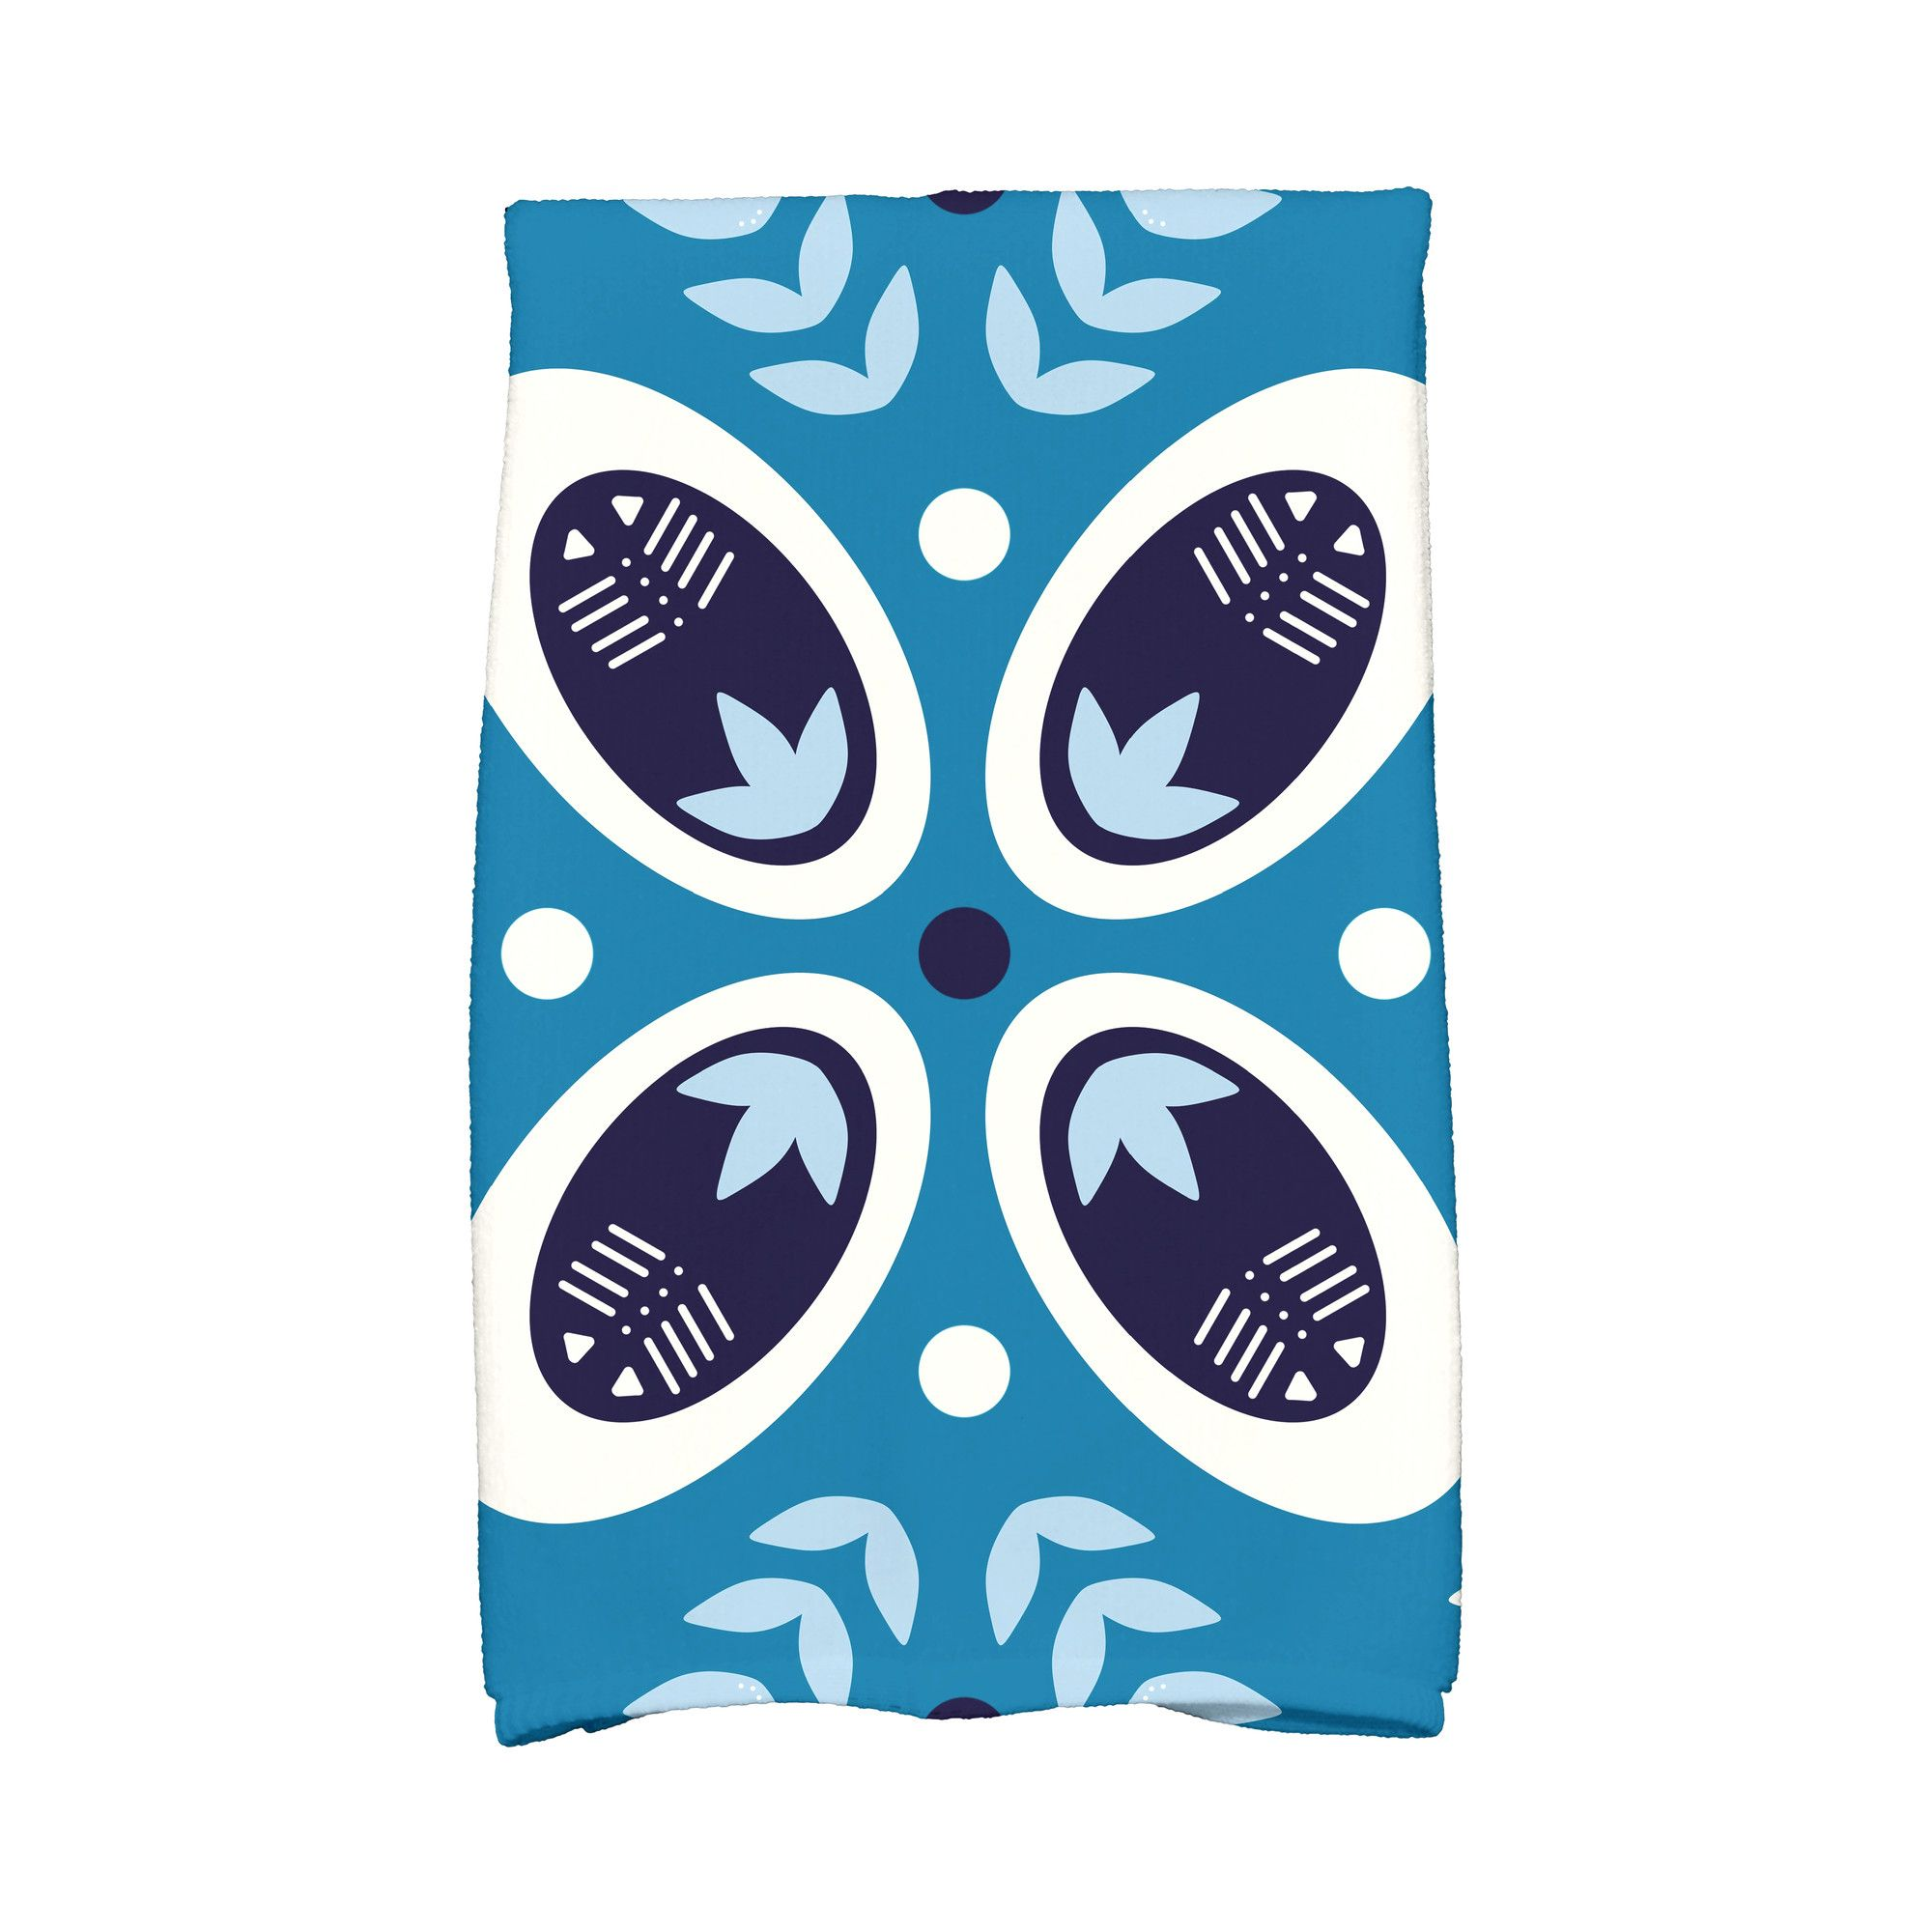 Holiday Wishes Tradition Hand Towel   Products   Pinterest   Hand ...